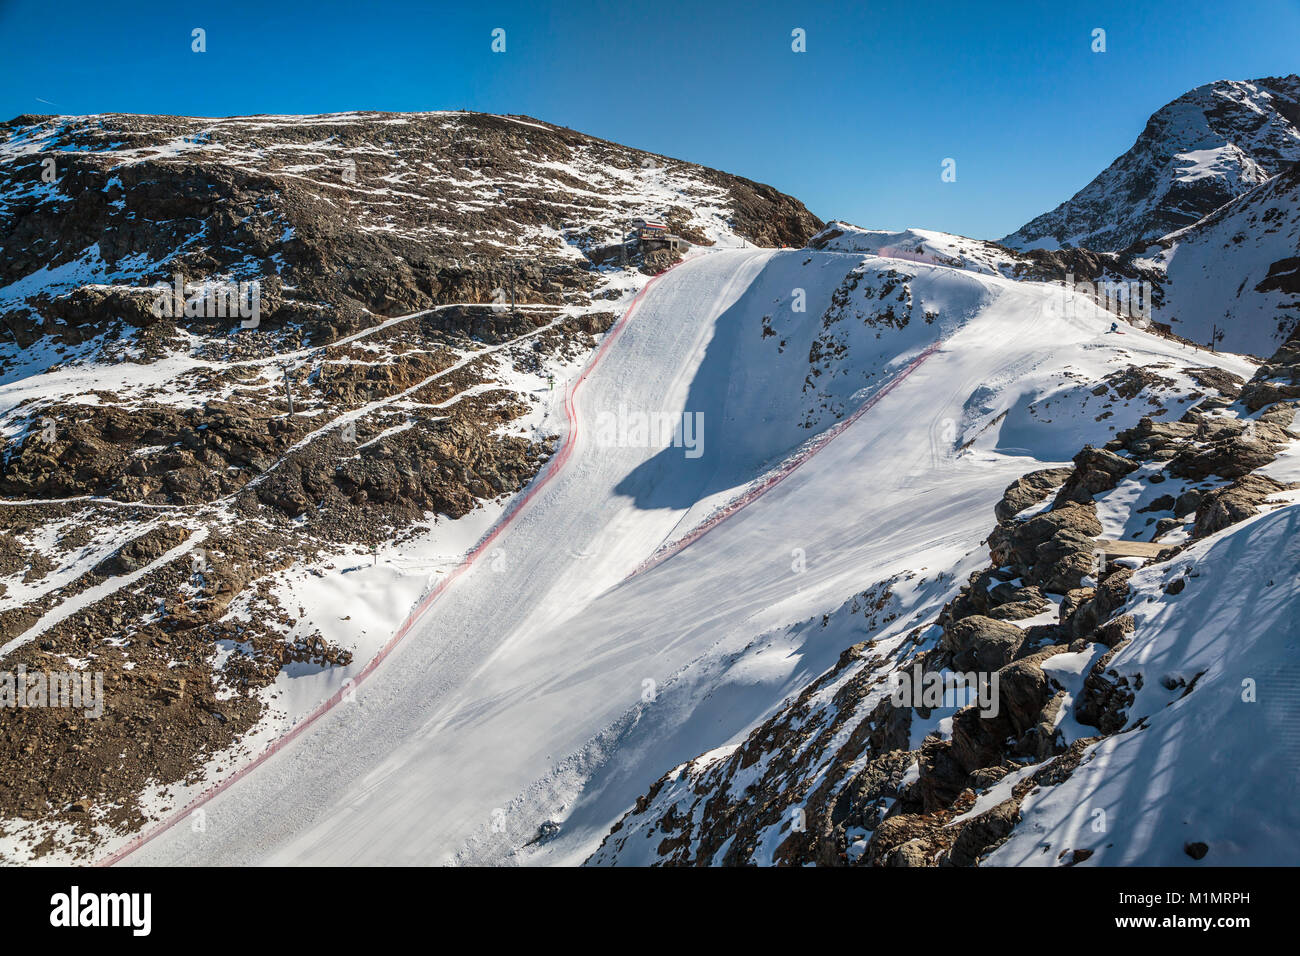 A ski run in the Bernina mountain peaks and the Diavolezza Glacier near St. Moritz, Switzerland, Europe. - Stock Image